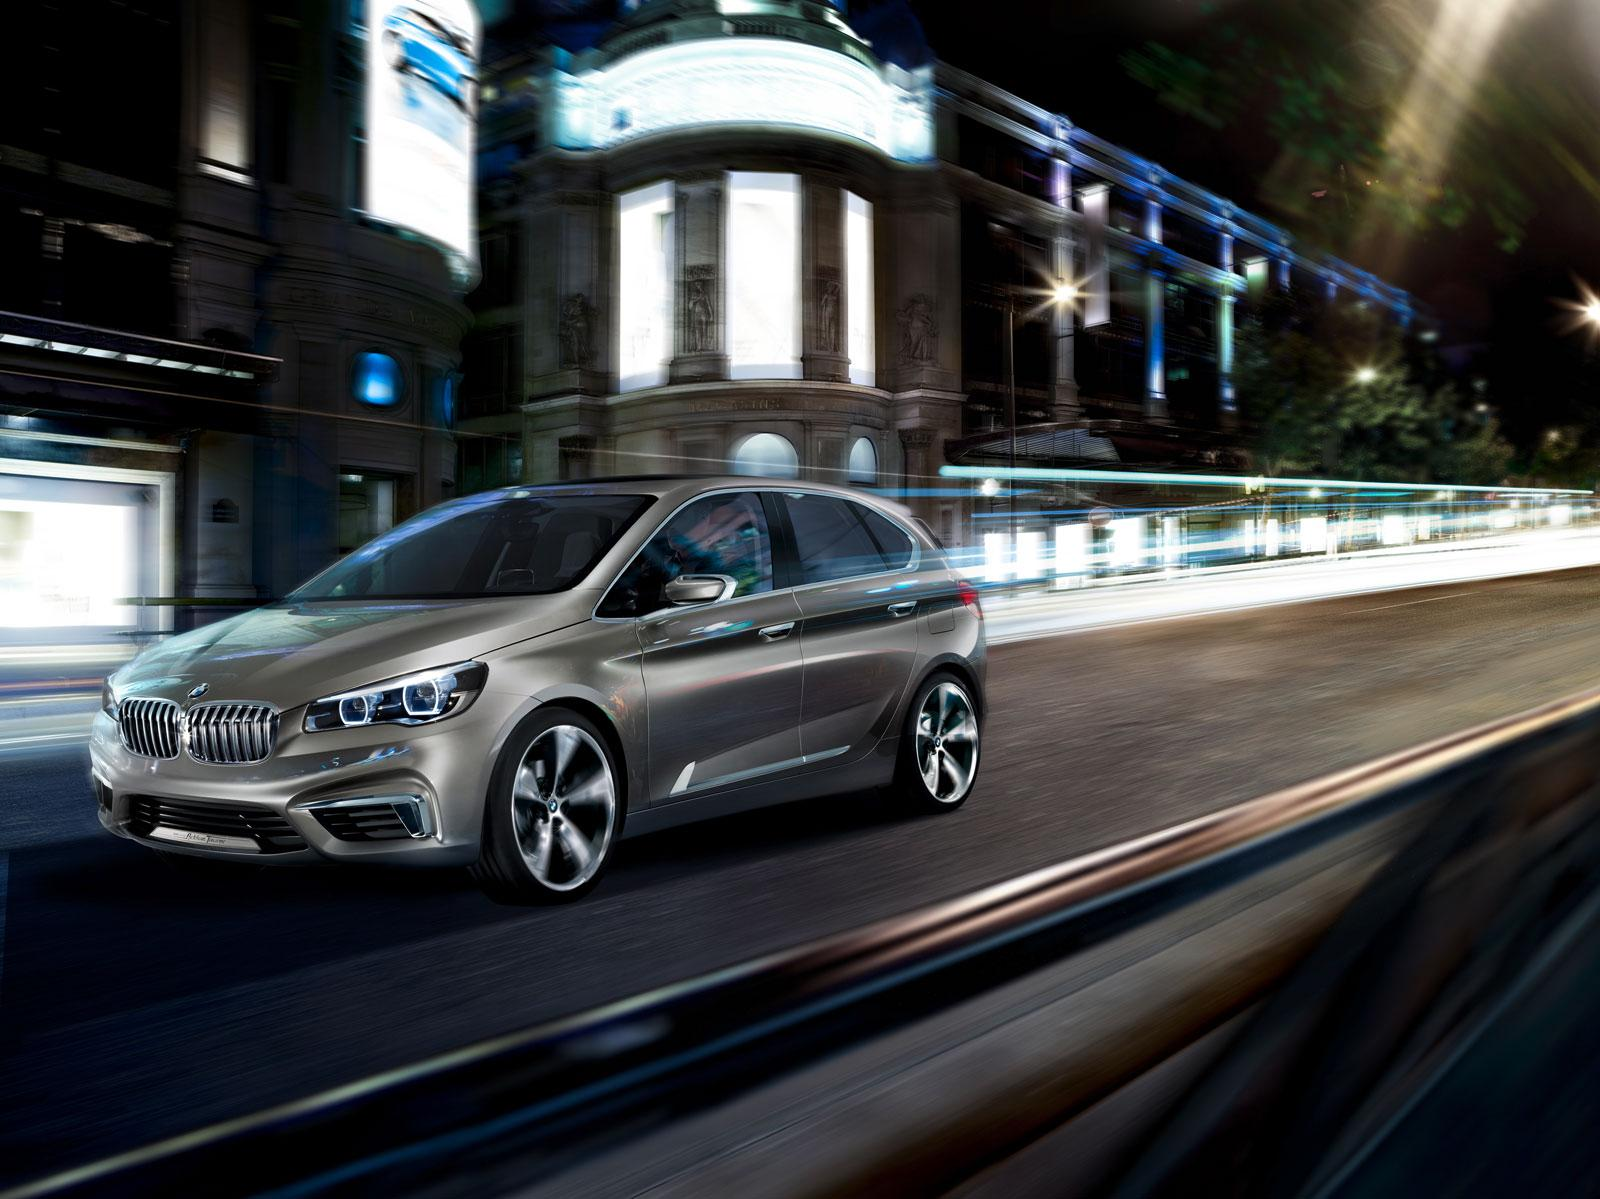 BMW Concept Active Tourer - Car Body Design